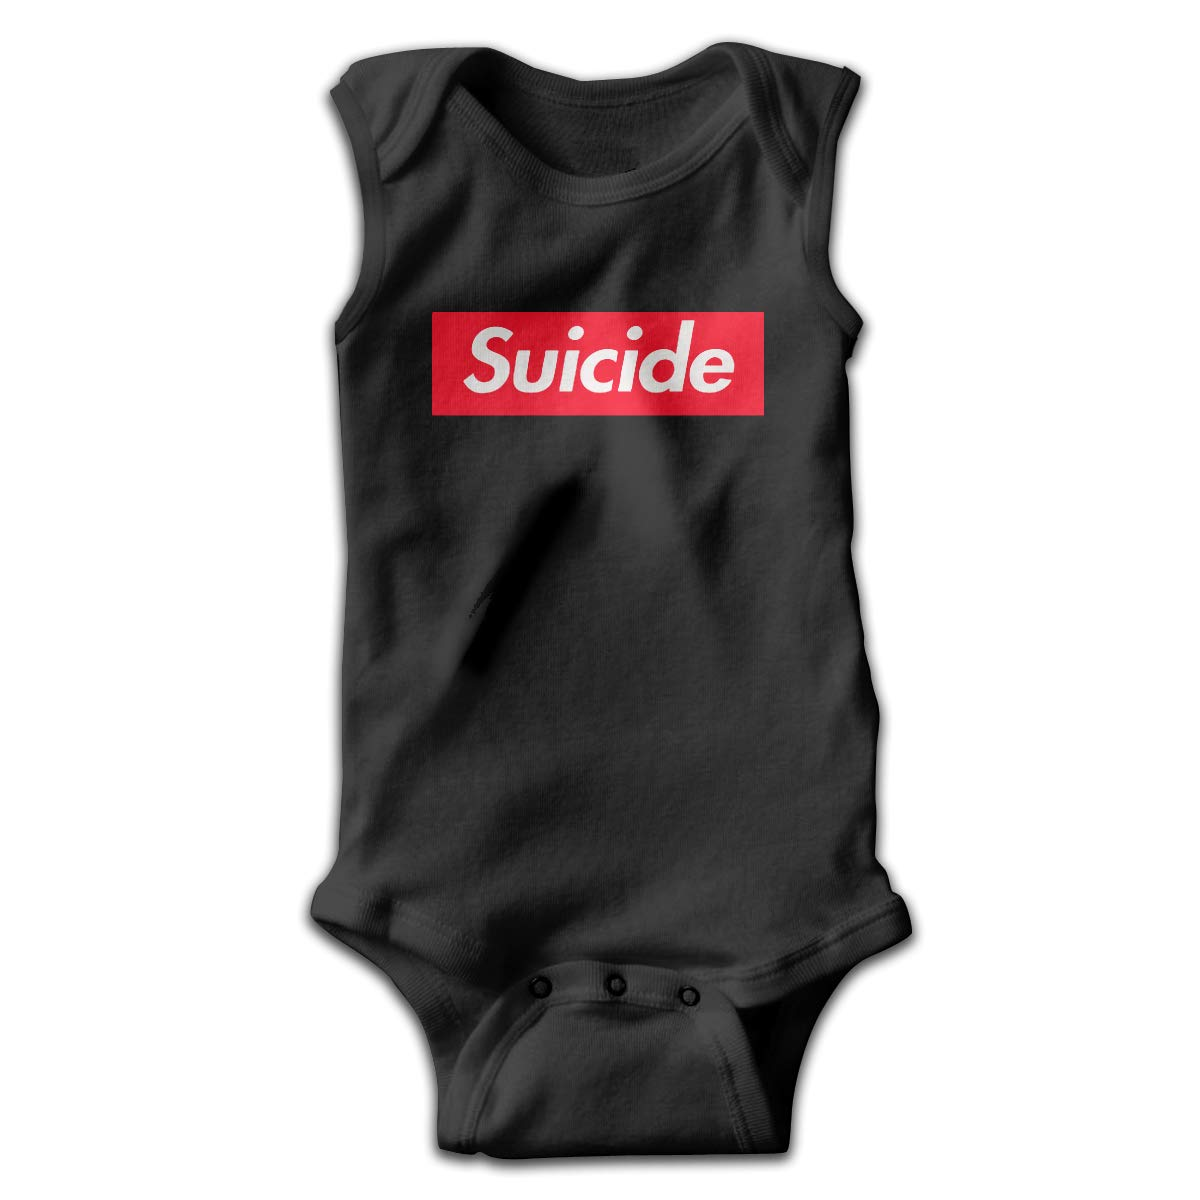 CZDewQ80 Baby Boys Baby Girls Suicide Sleeveless Baby Clothes Playsuit 100/% Cotton